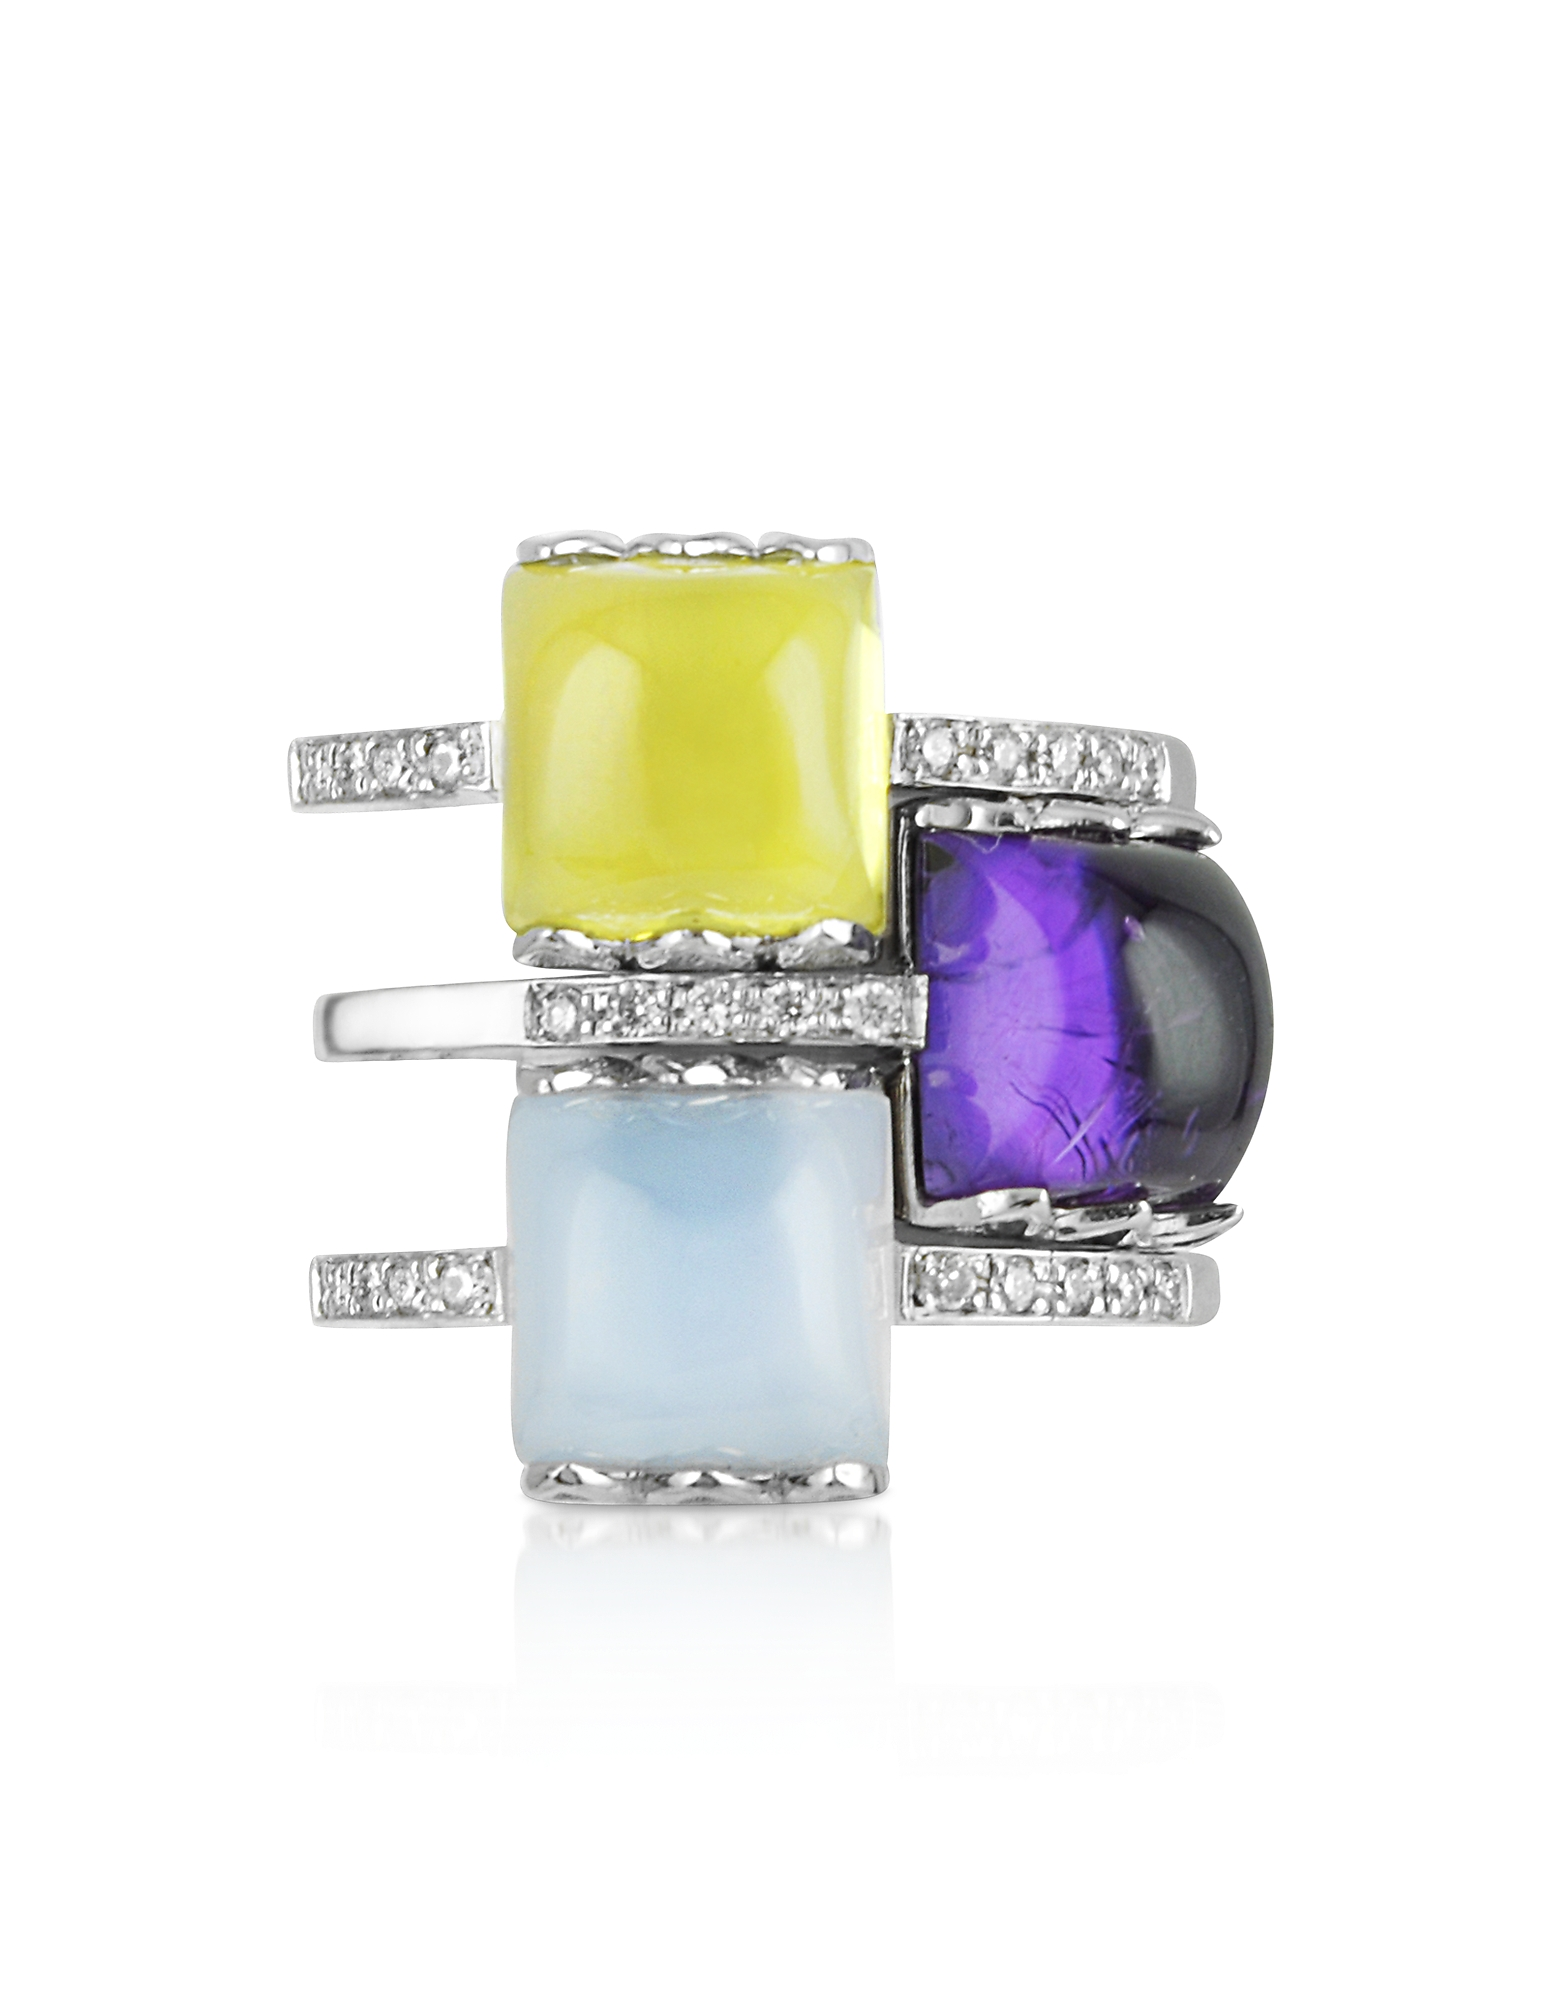 Image of Mia & Beverly Designer Rings, Gemstone and Diamond 18K White Gold Ring